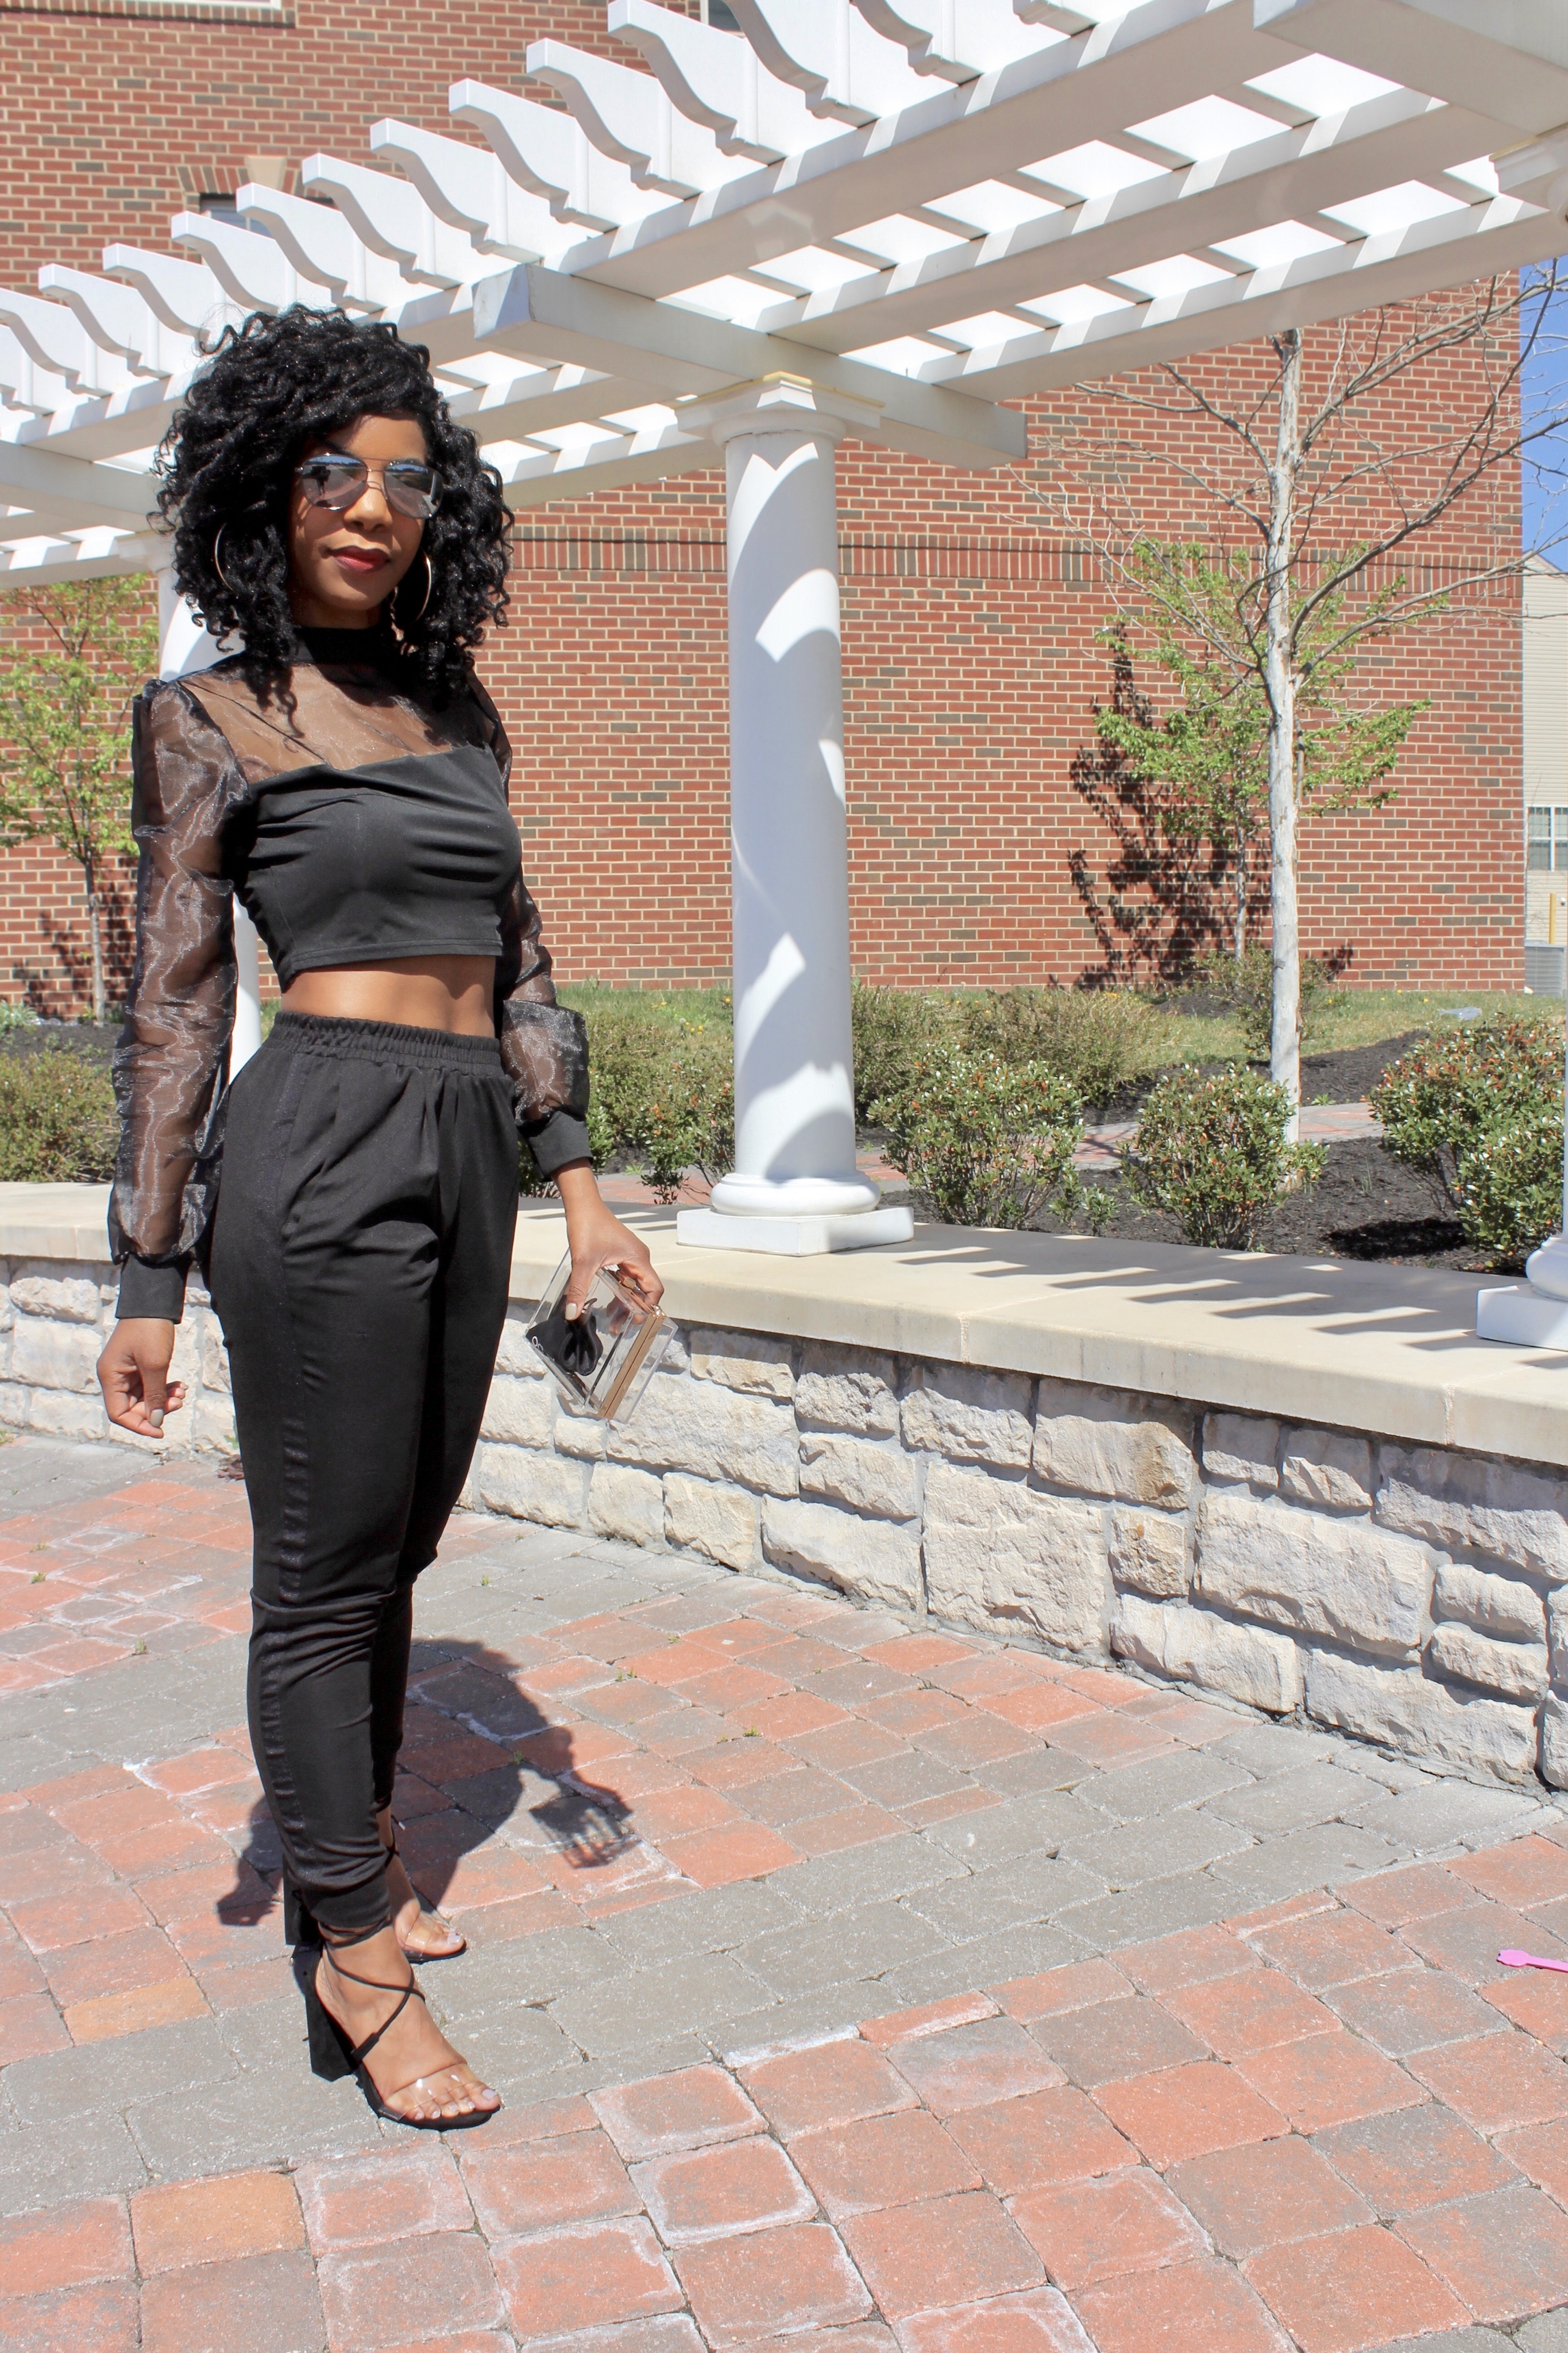 SHEIN Mock-Neck Organza Insert Crop Top http://bit.ly/2ug6DDY, Bar III Joggers, Asos Barely There Heels, Forever21 Clear Purse